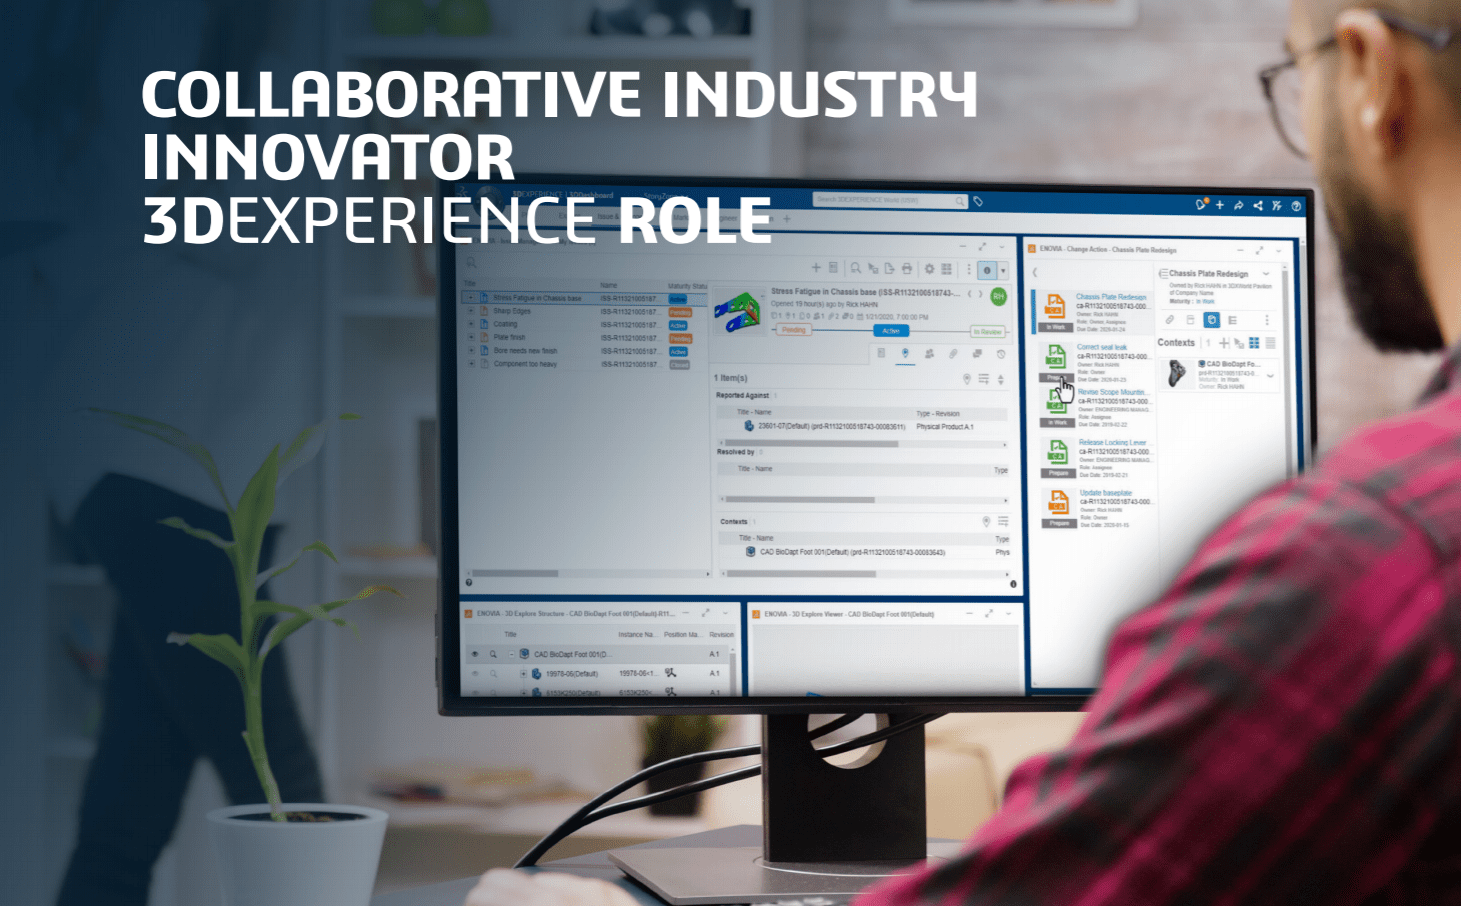 Collaborative Industry Innovator